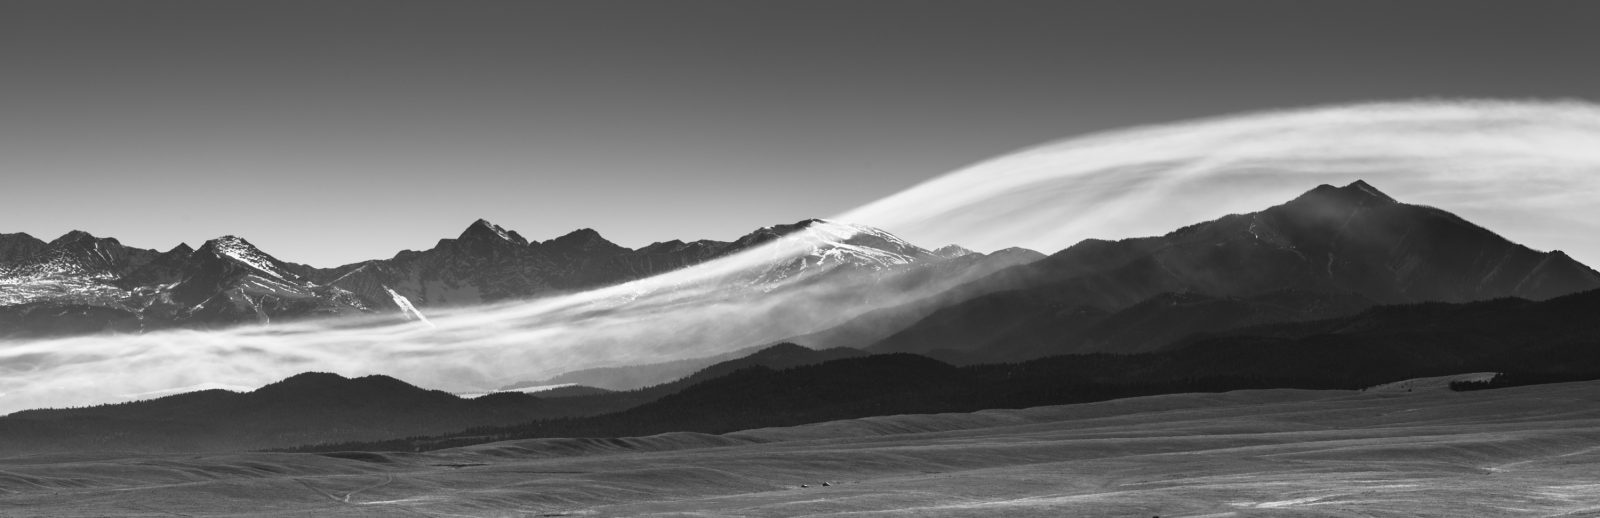 Wave Cloud Over Sierra Blanca